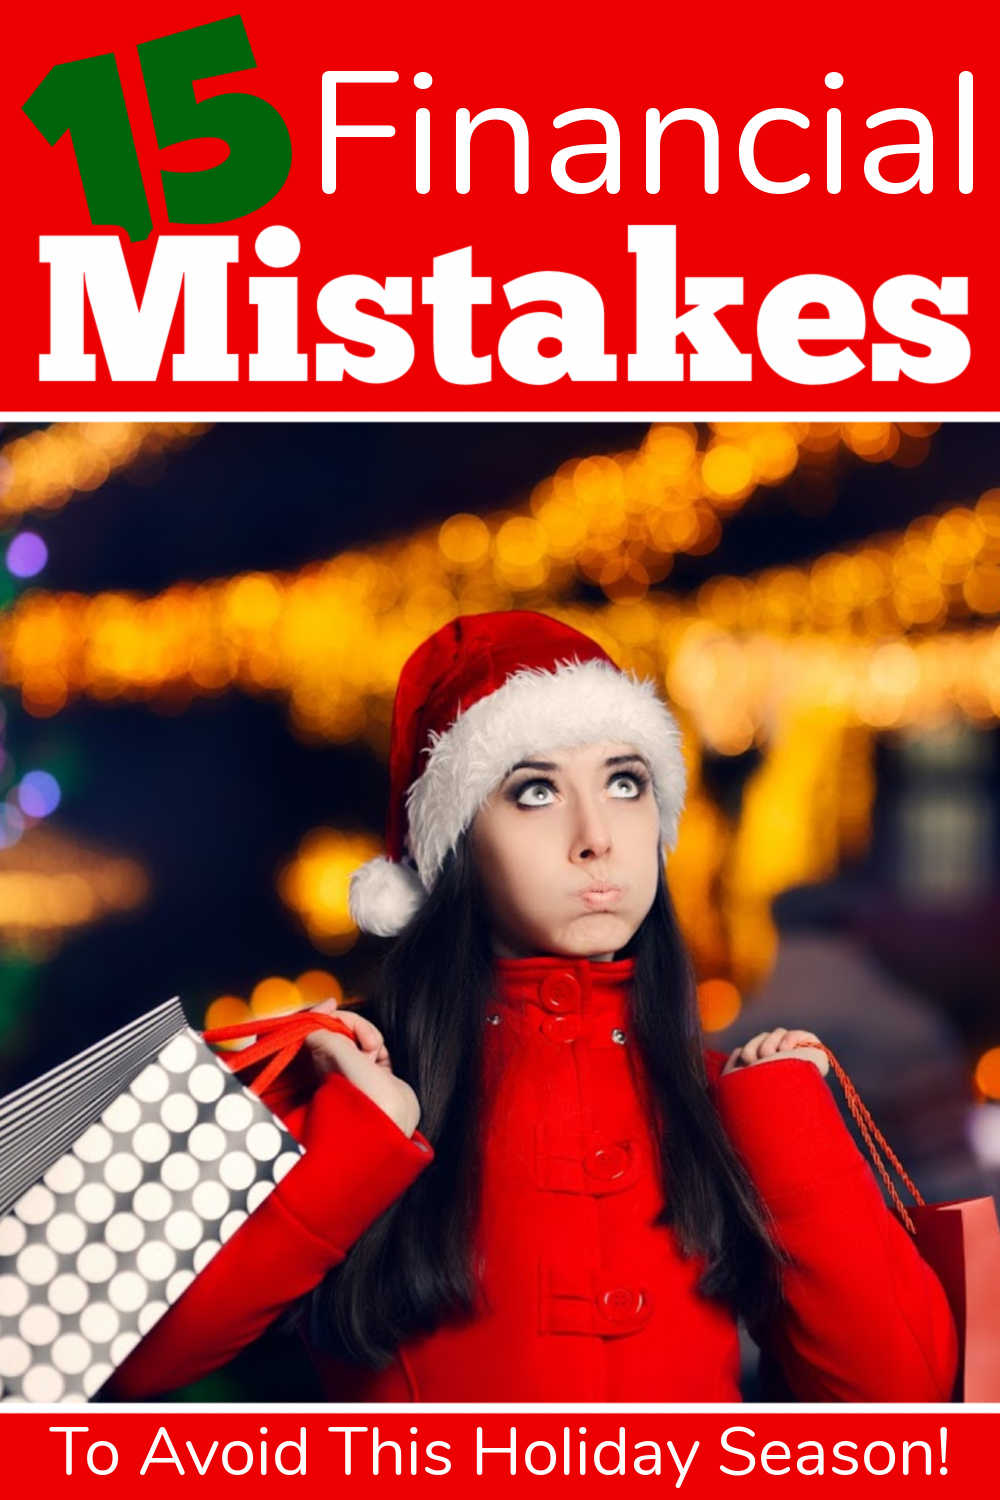 15 Financial Mistakes to Avoid This Holiday Season